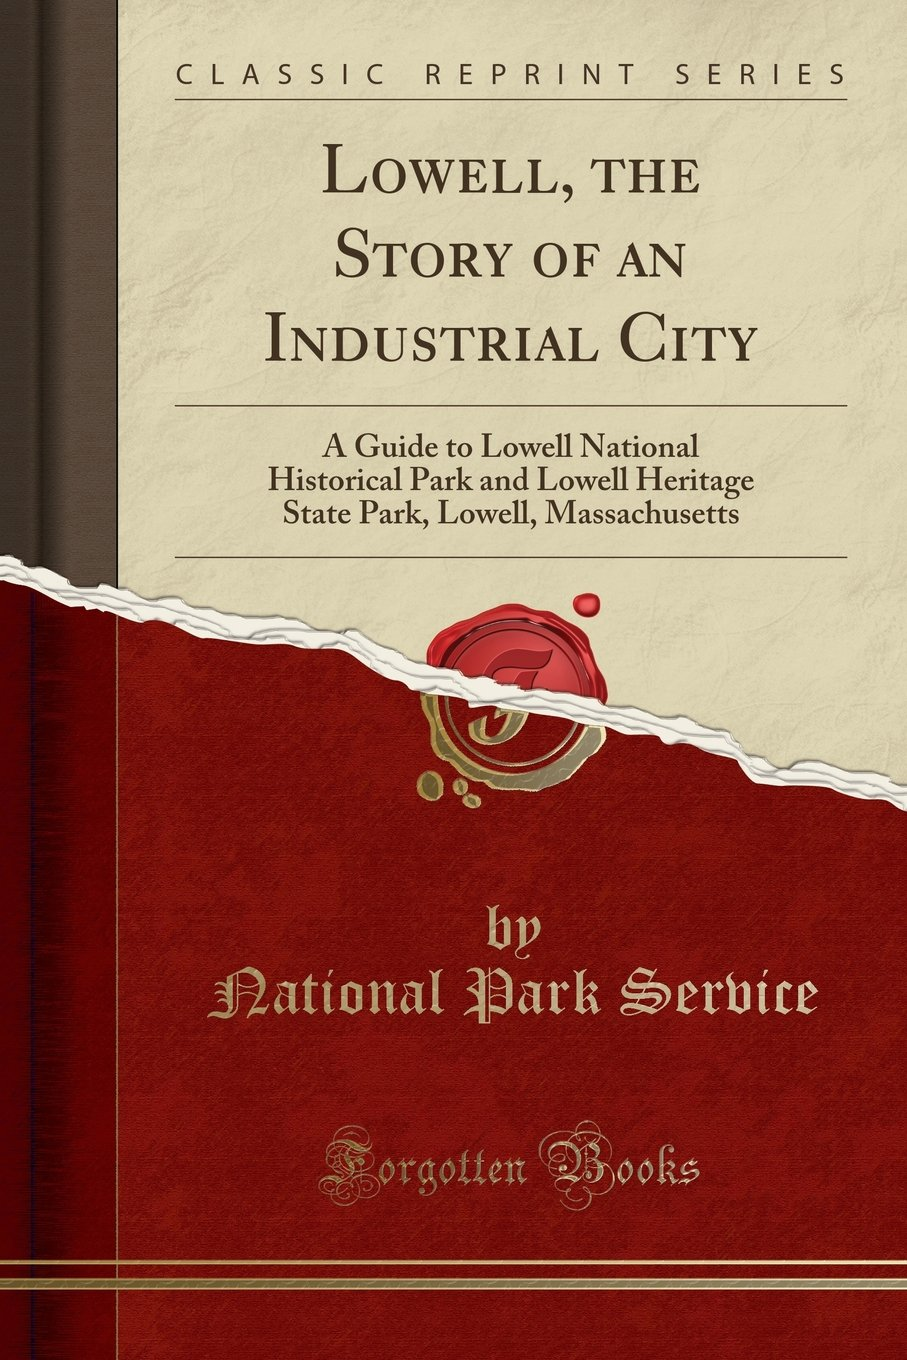 Lowell, the Story of an Industrial City: A Guide to Lowell National Historical Park and Lowell Heritage State Park, Lowell, Massachusetts (Classic Reprint) PDF ePub fb2 book